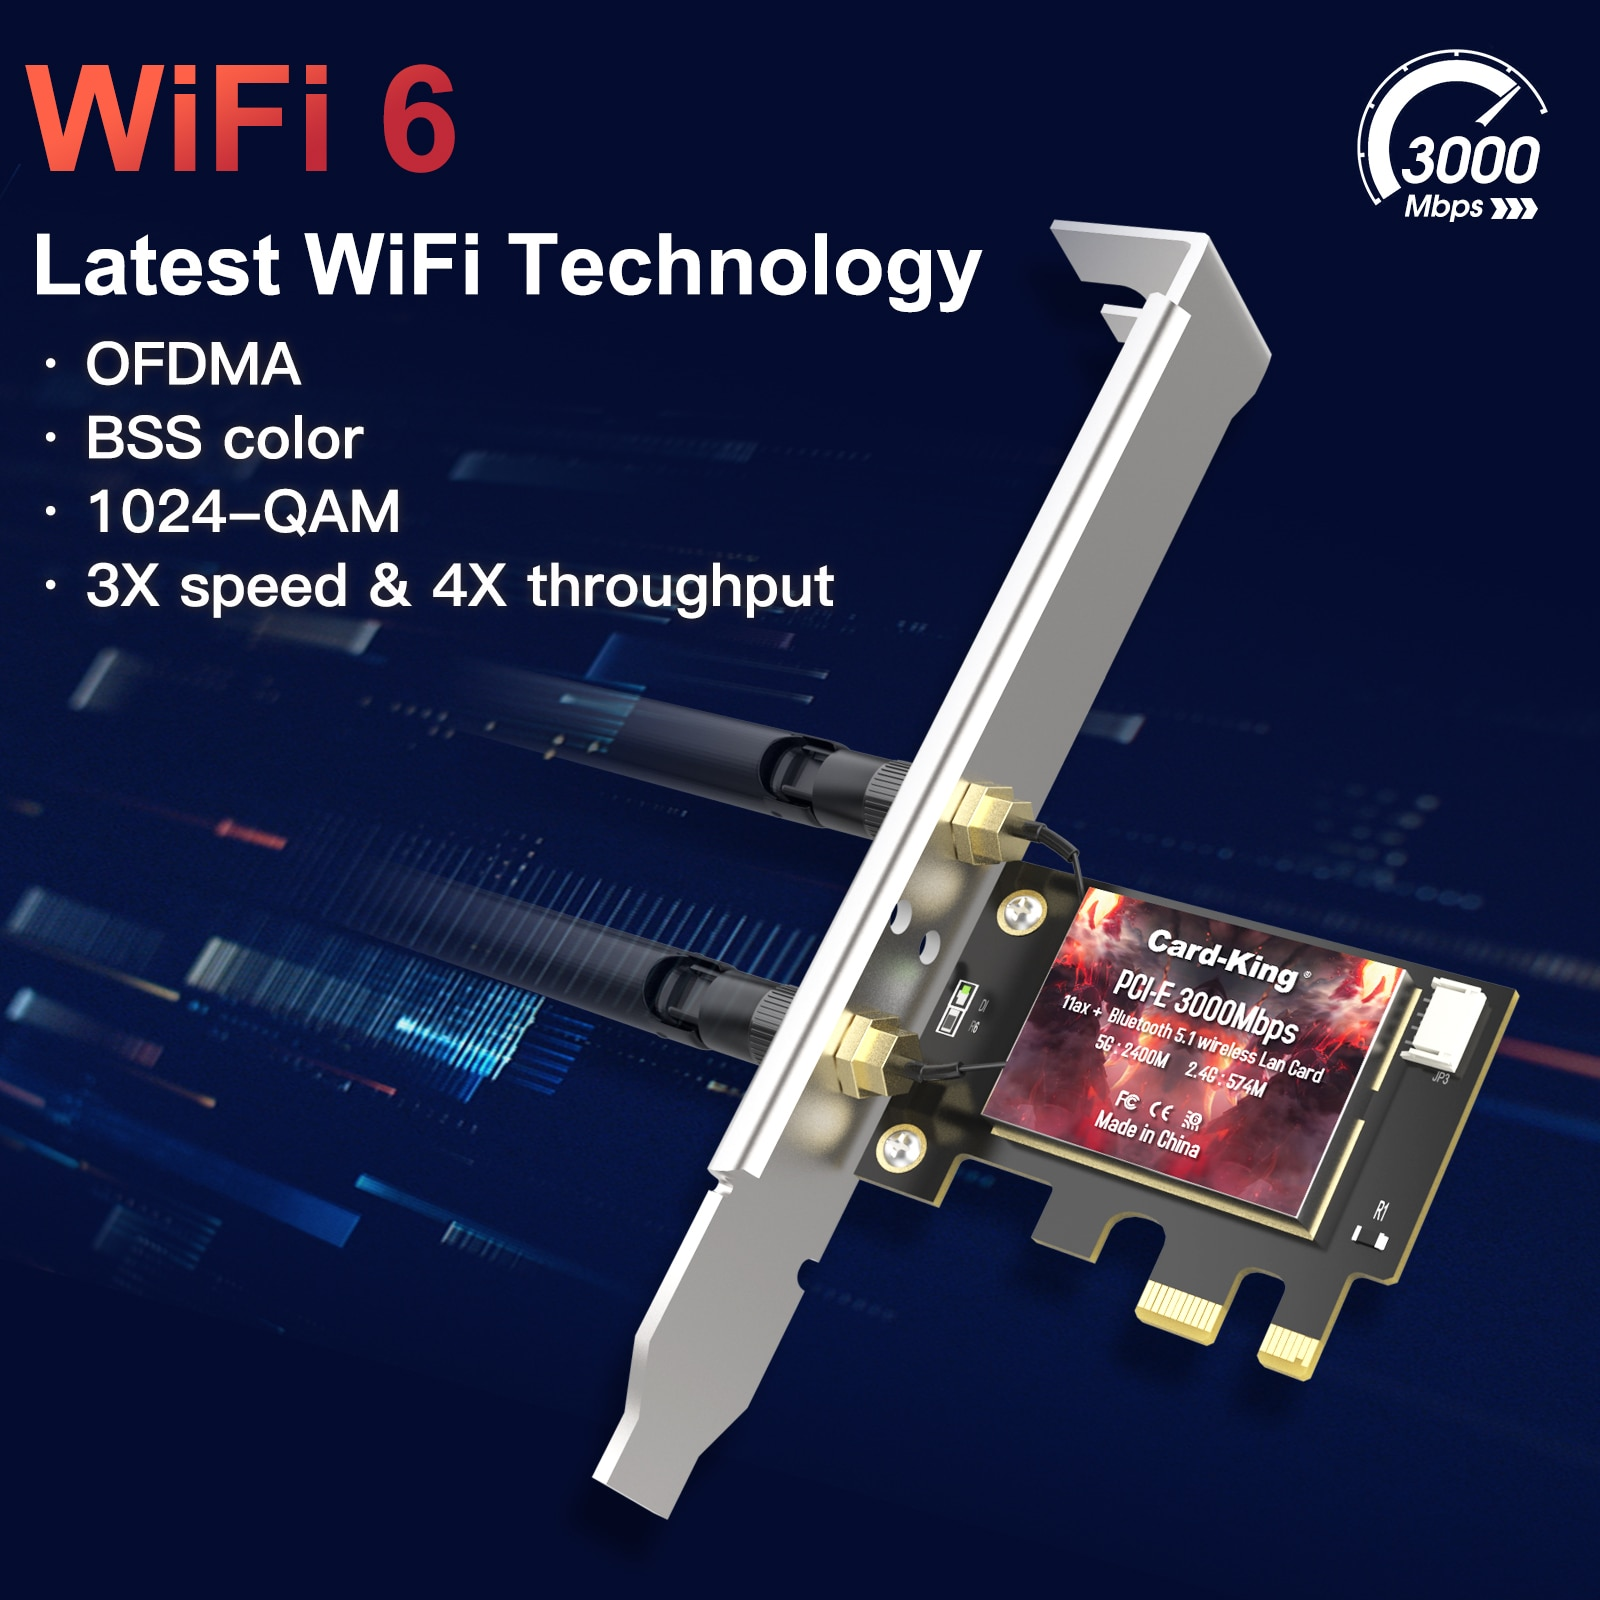 CardKing 3000Mbps WiFi Adapter 6 PCI Express 802.11AC/AX Intel AX200 PCIe Network Card 2.4G/5GHz Bluetooth 5.1 Wi-Fi Dual Band enlarge